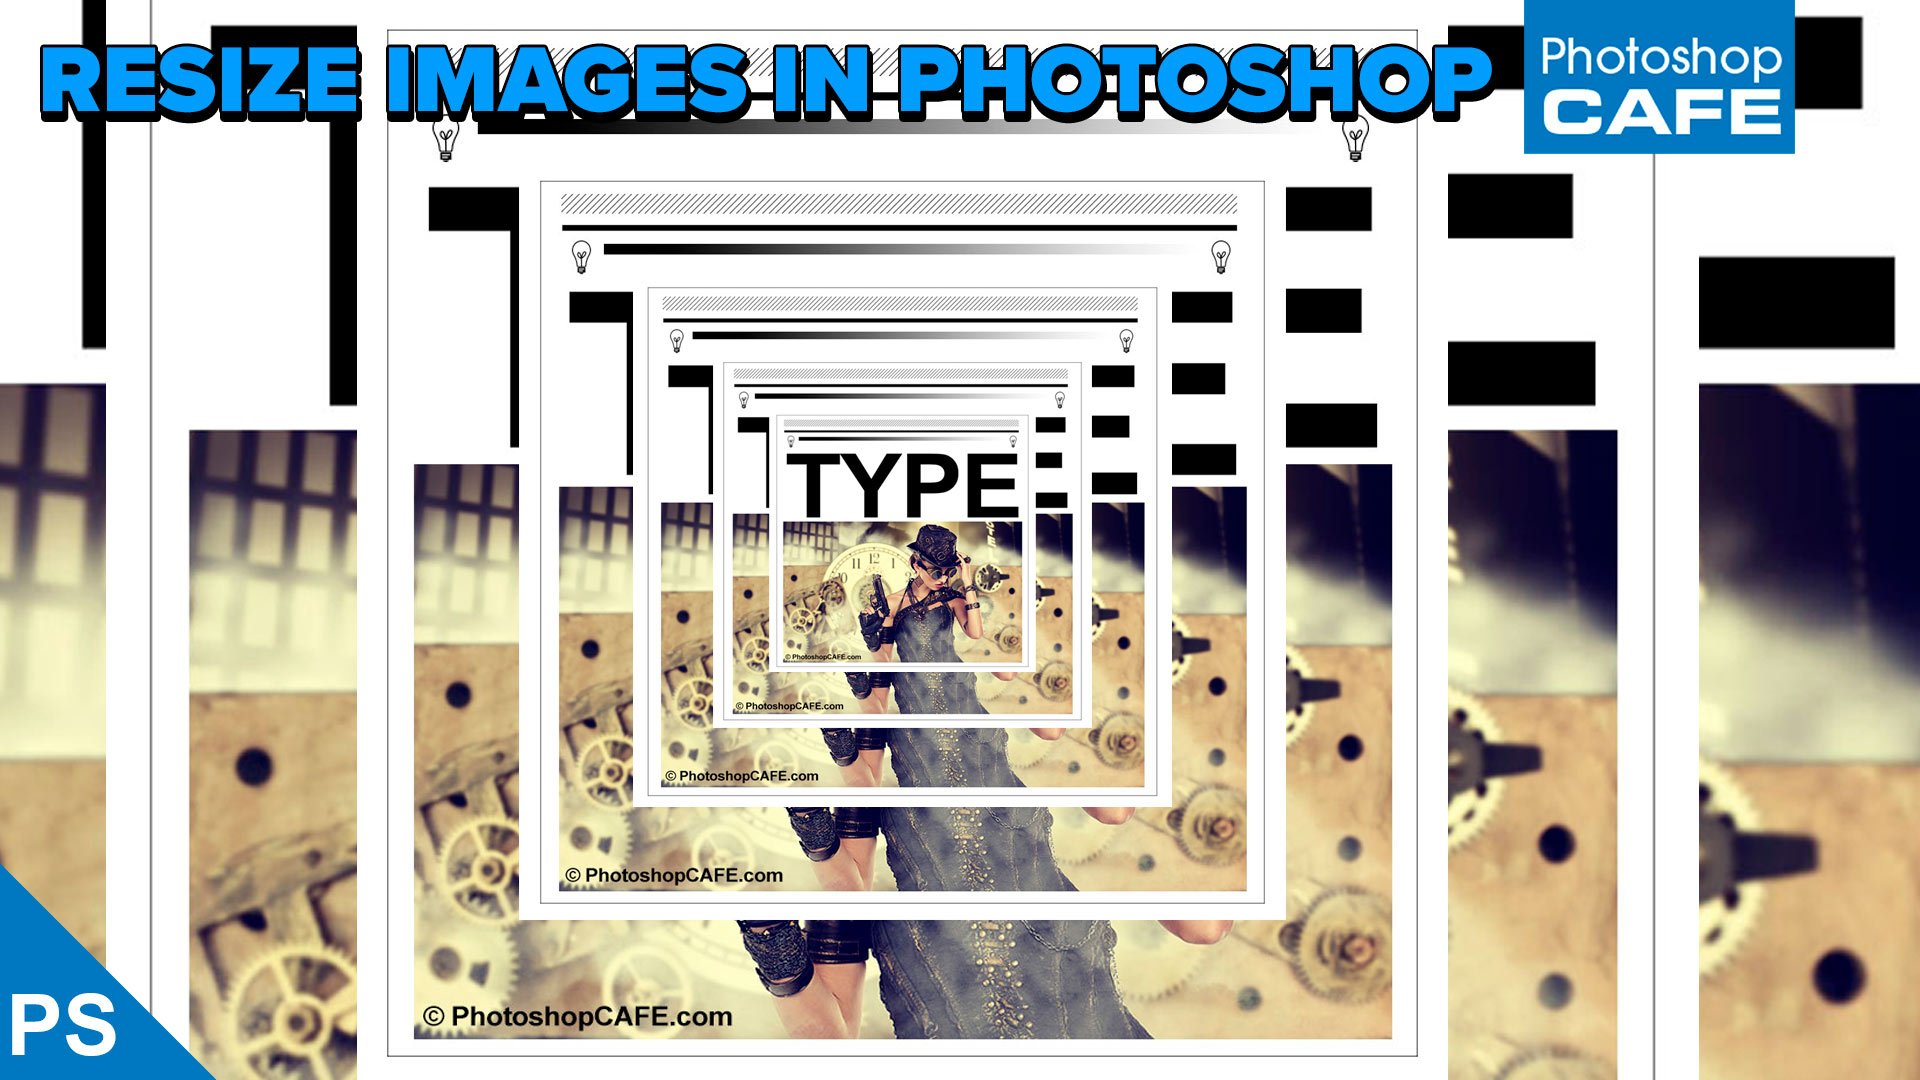 Lovely Photoshop Photoshop Keep Quality Photoshopcafe How To Resize An Image Photoshop 2018 How To Resize An Image Photoshop 7 How To Resize Layer Keep Quality How To Resize Layer dpreview How To Resize Layer In Photoshop